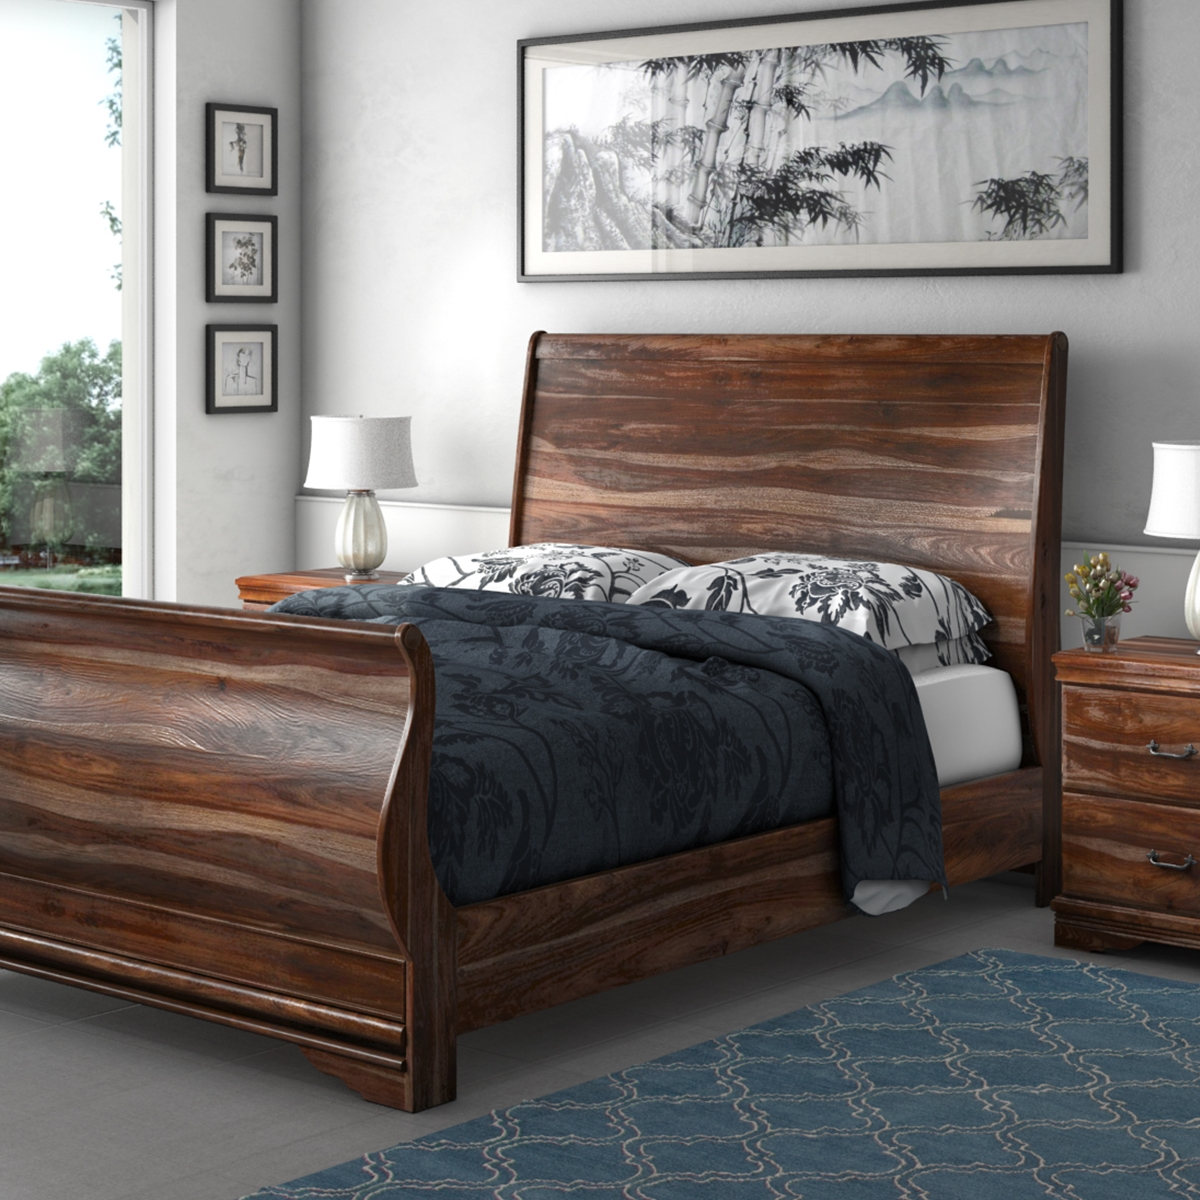 introducing new solid wood bed collection at sierra living concepts. Black Bedroom Furniture Sets. Home Design Ideas